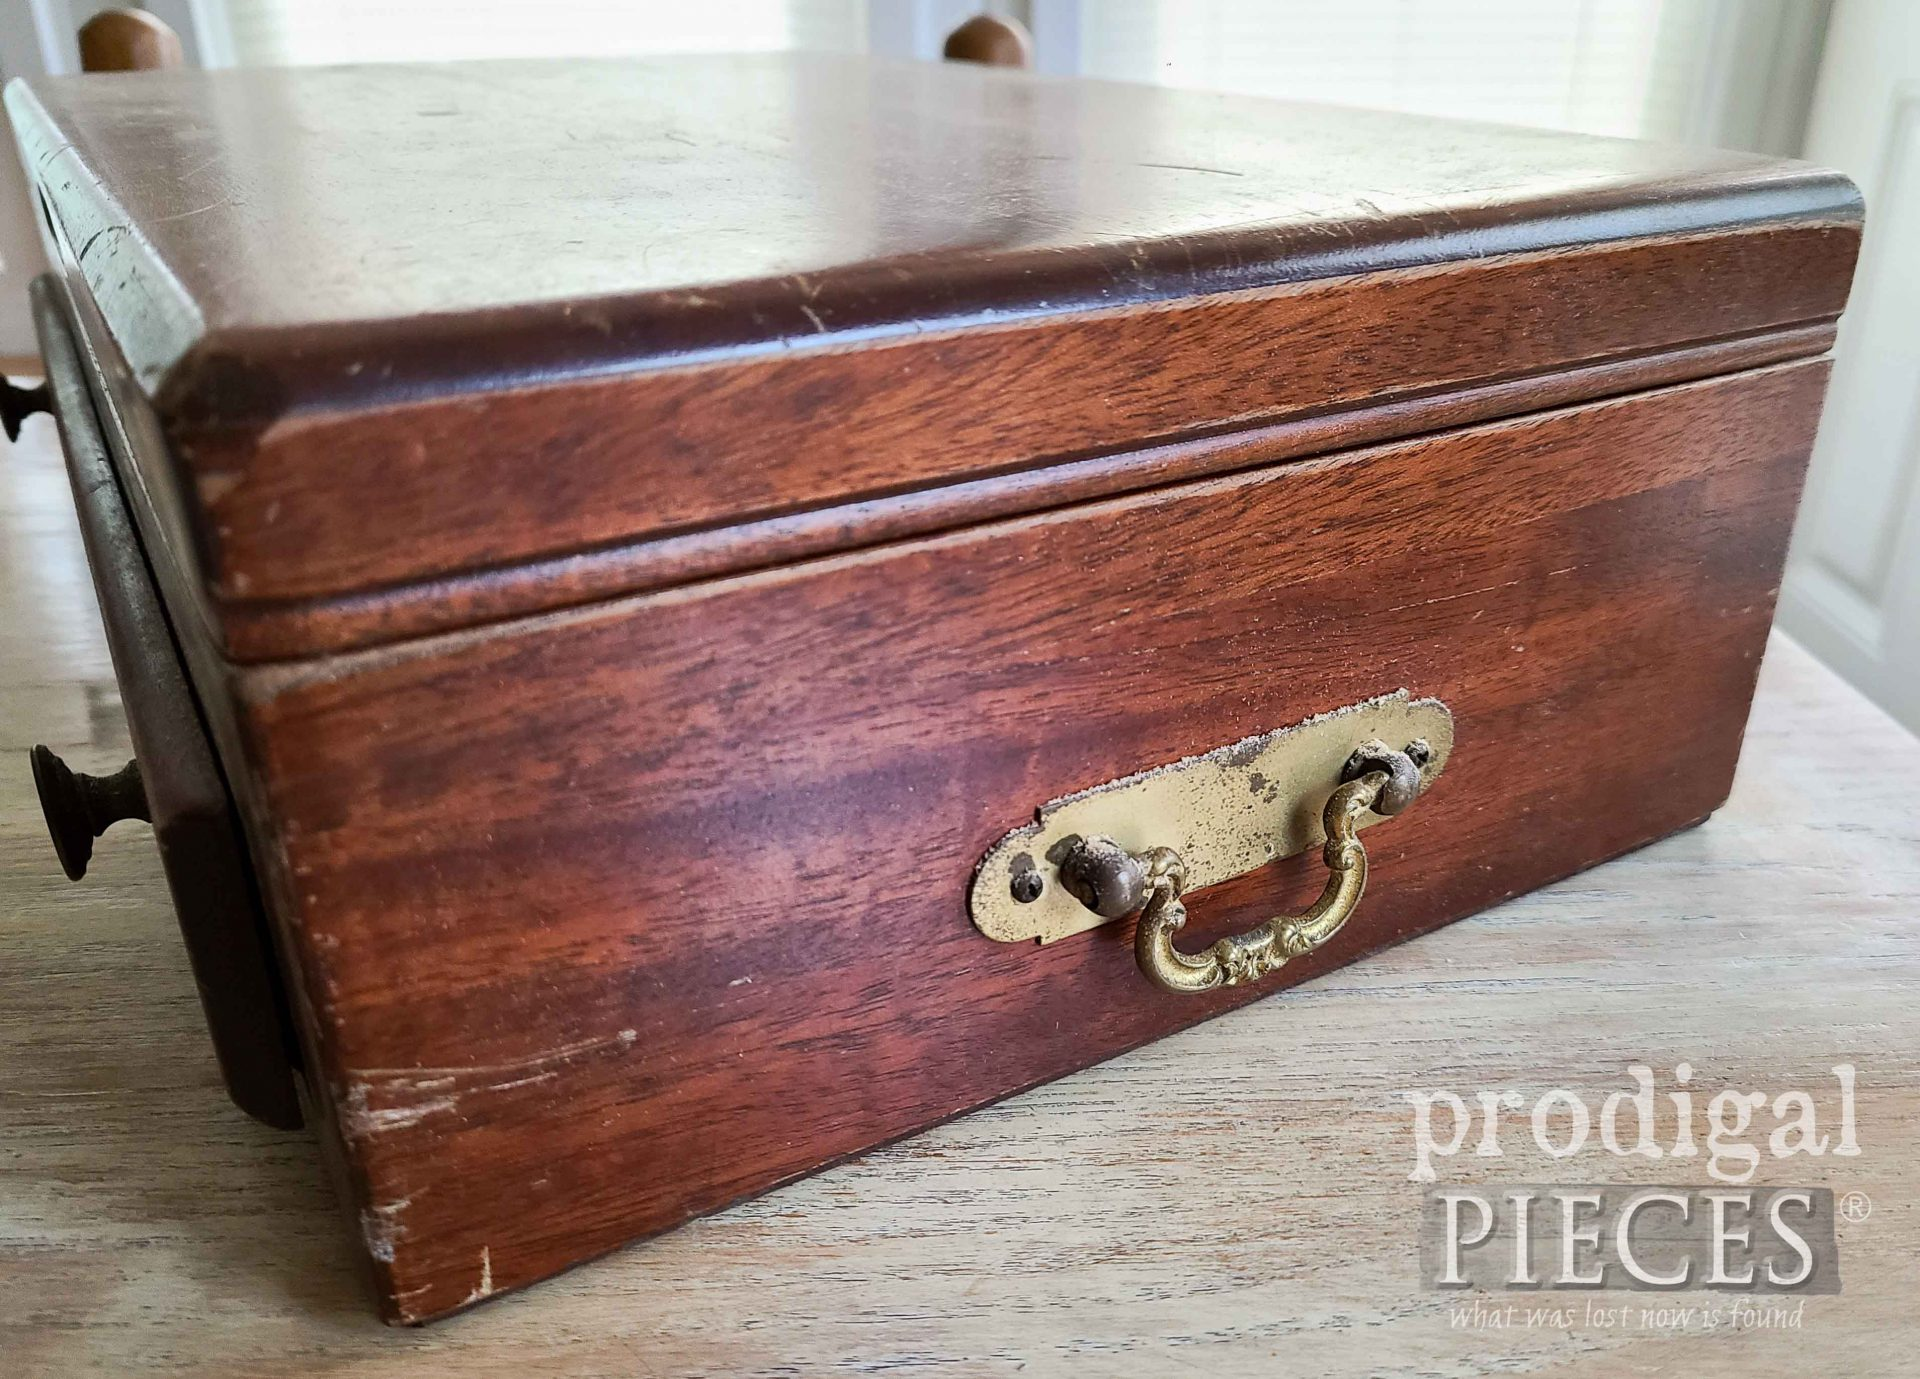 Silverware Chest Side Handles | prodigalpieces.com